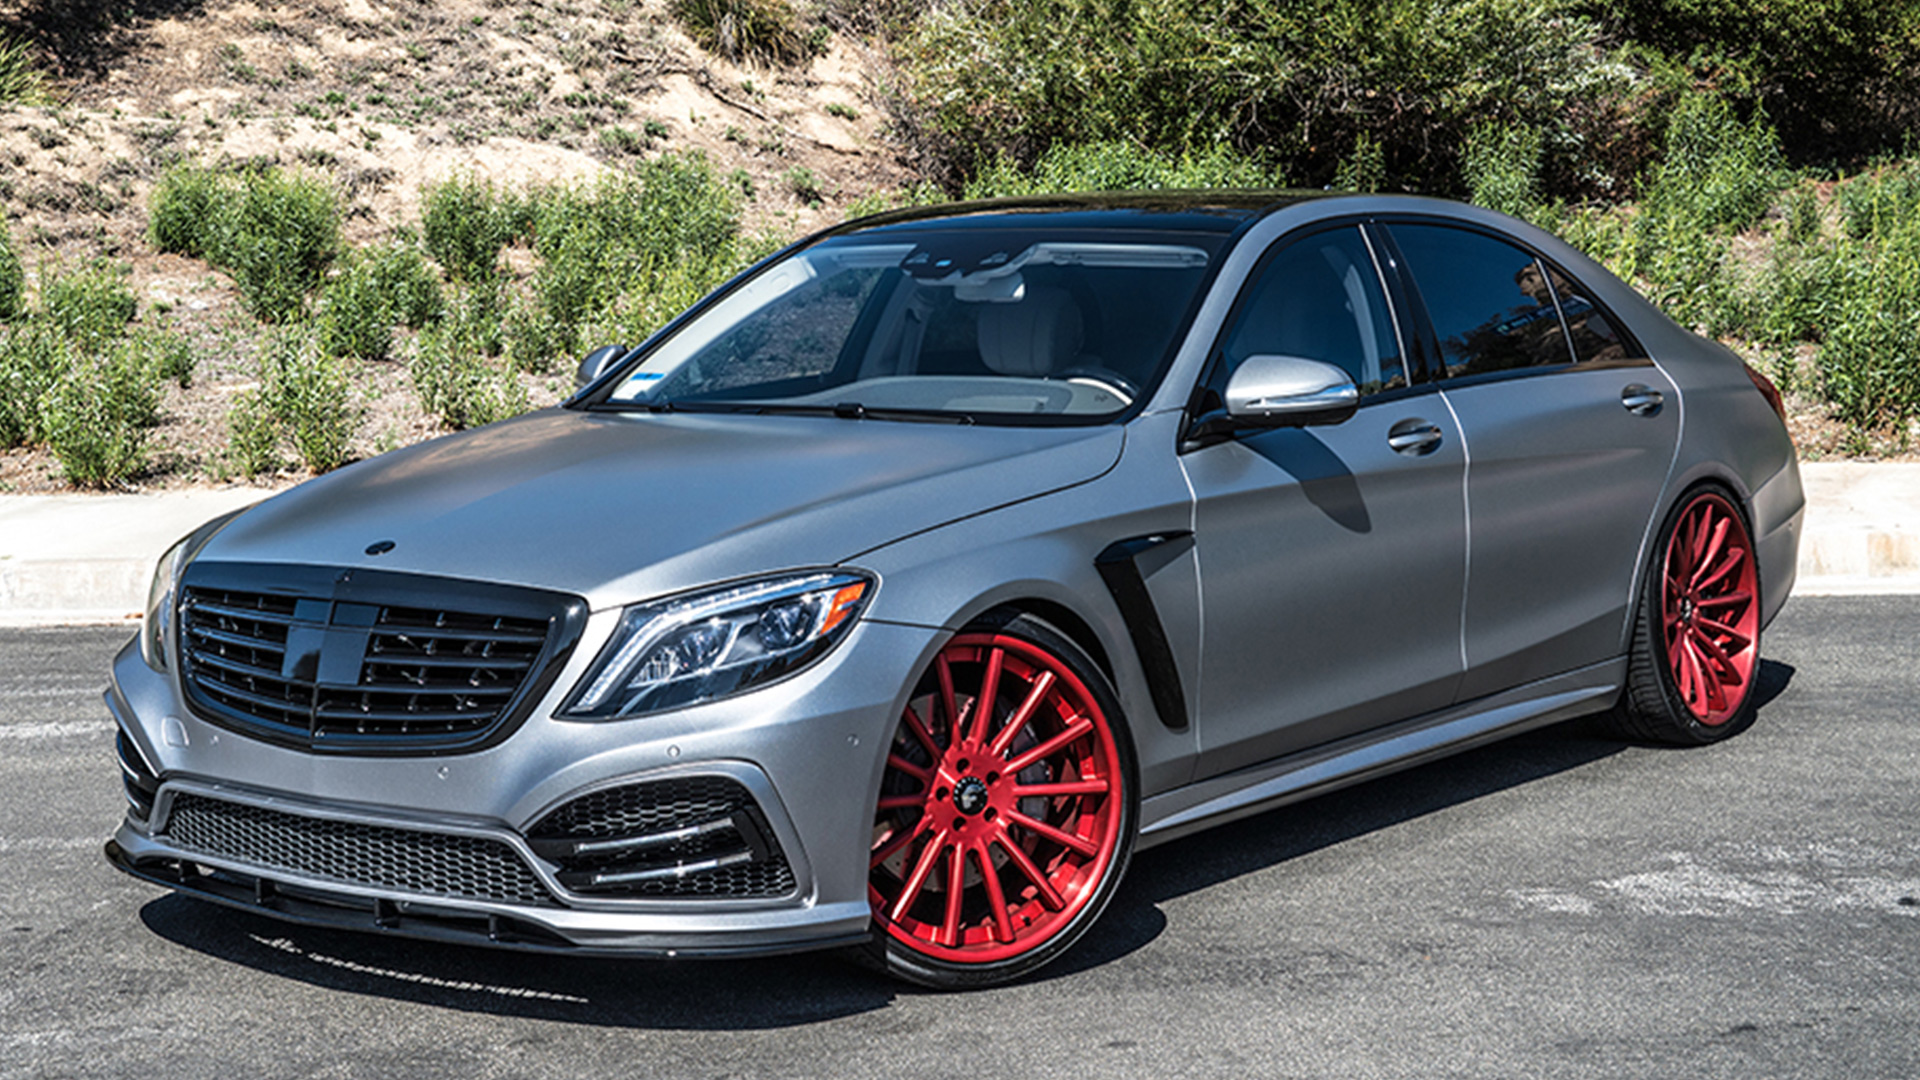 Prior design mercedes benz s550 rdb for Mercedes benz s550 rims